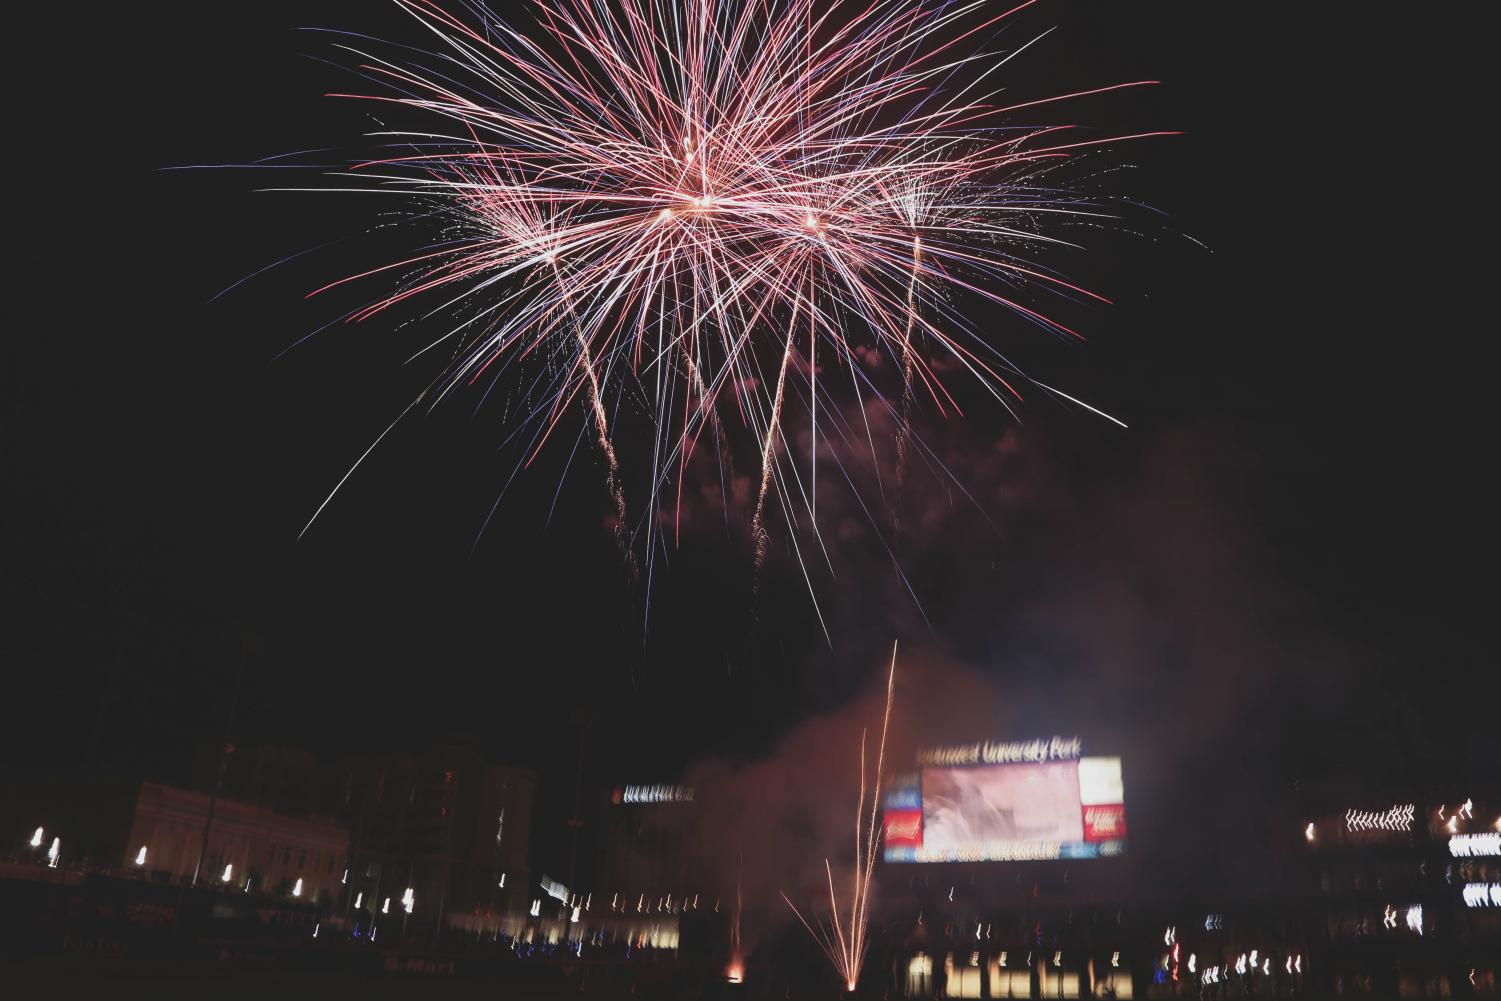 There are many 4th of July events going on in the city tomorrow.